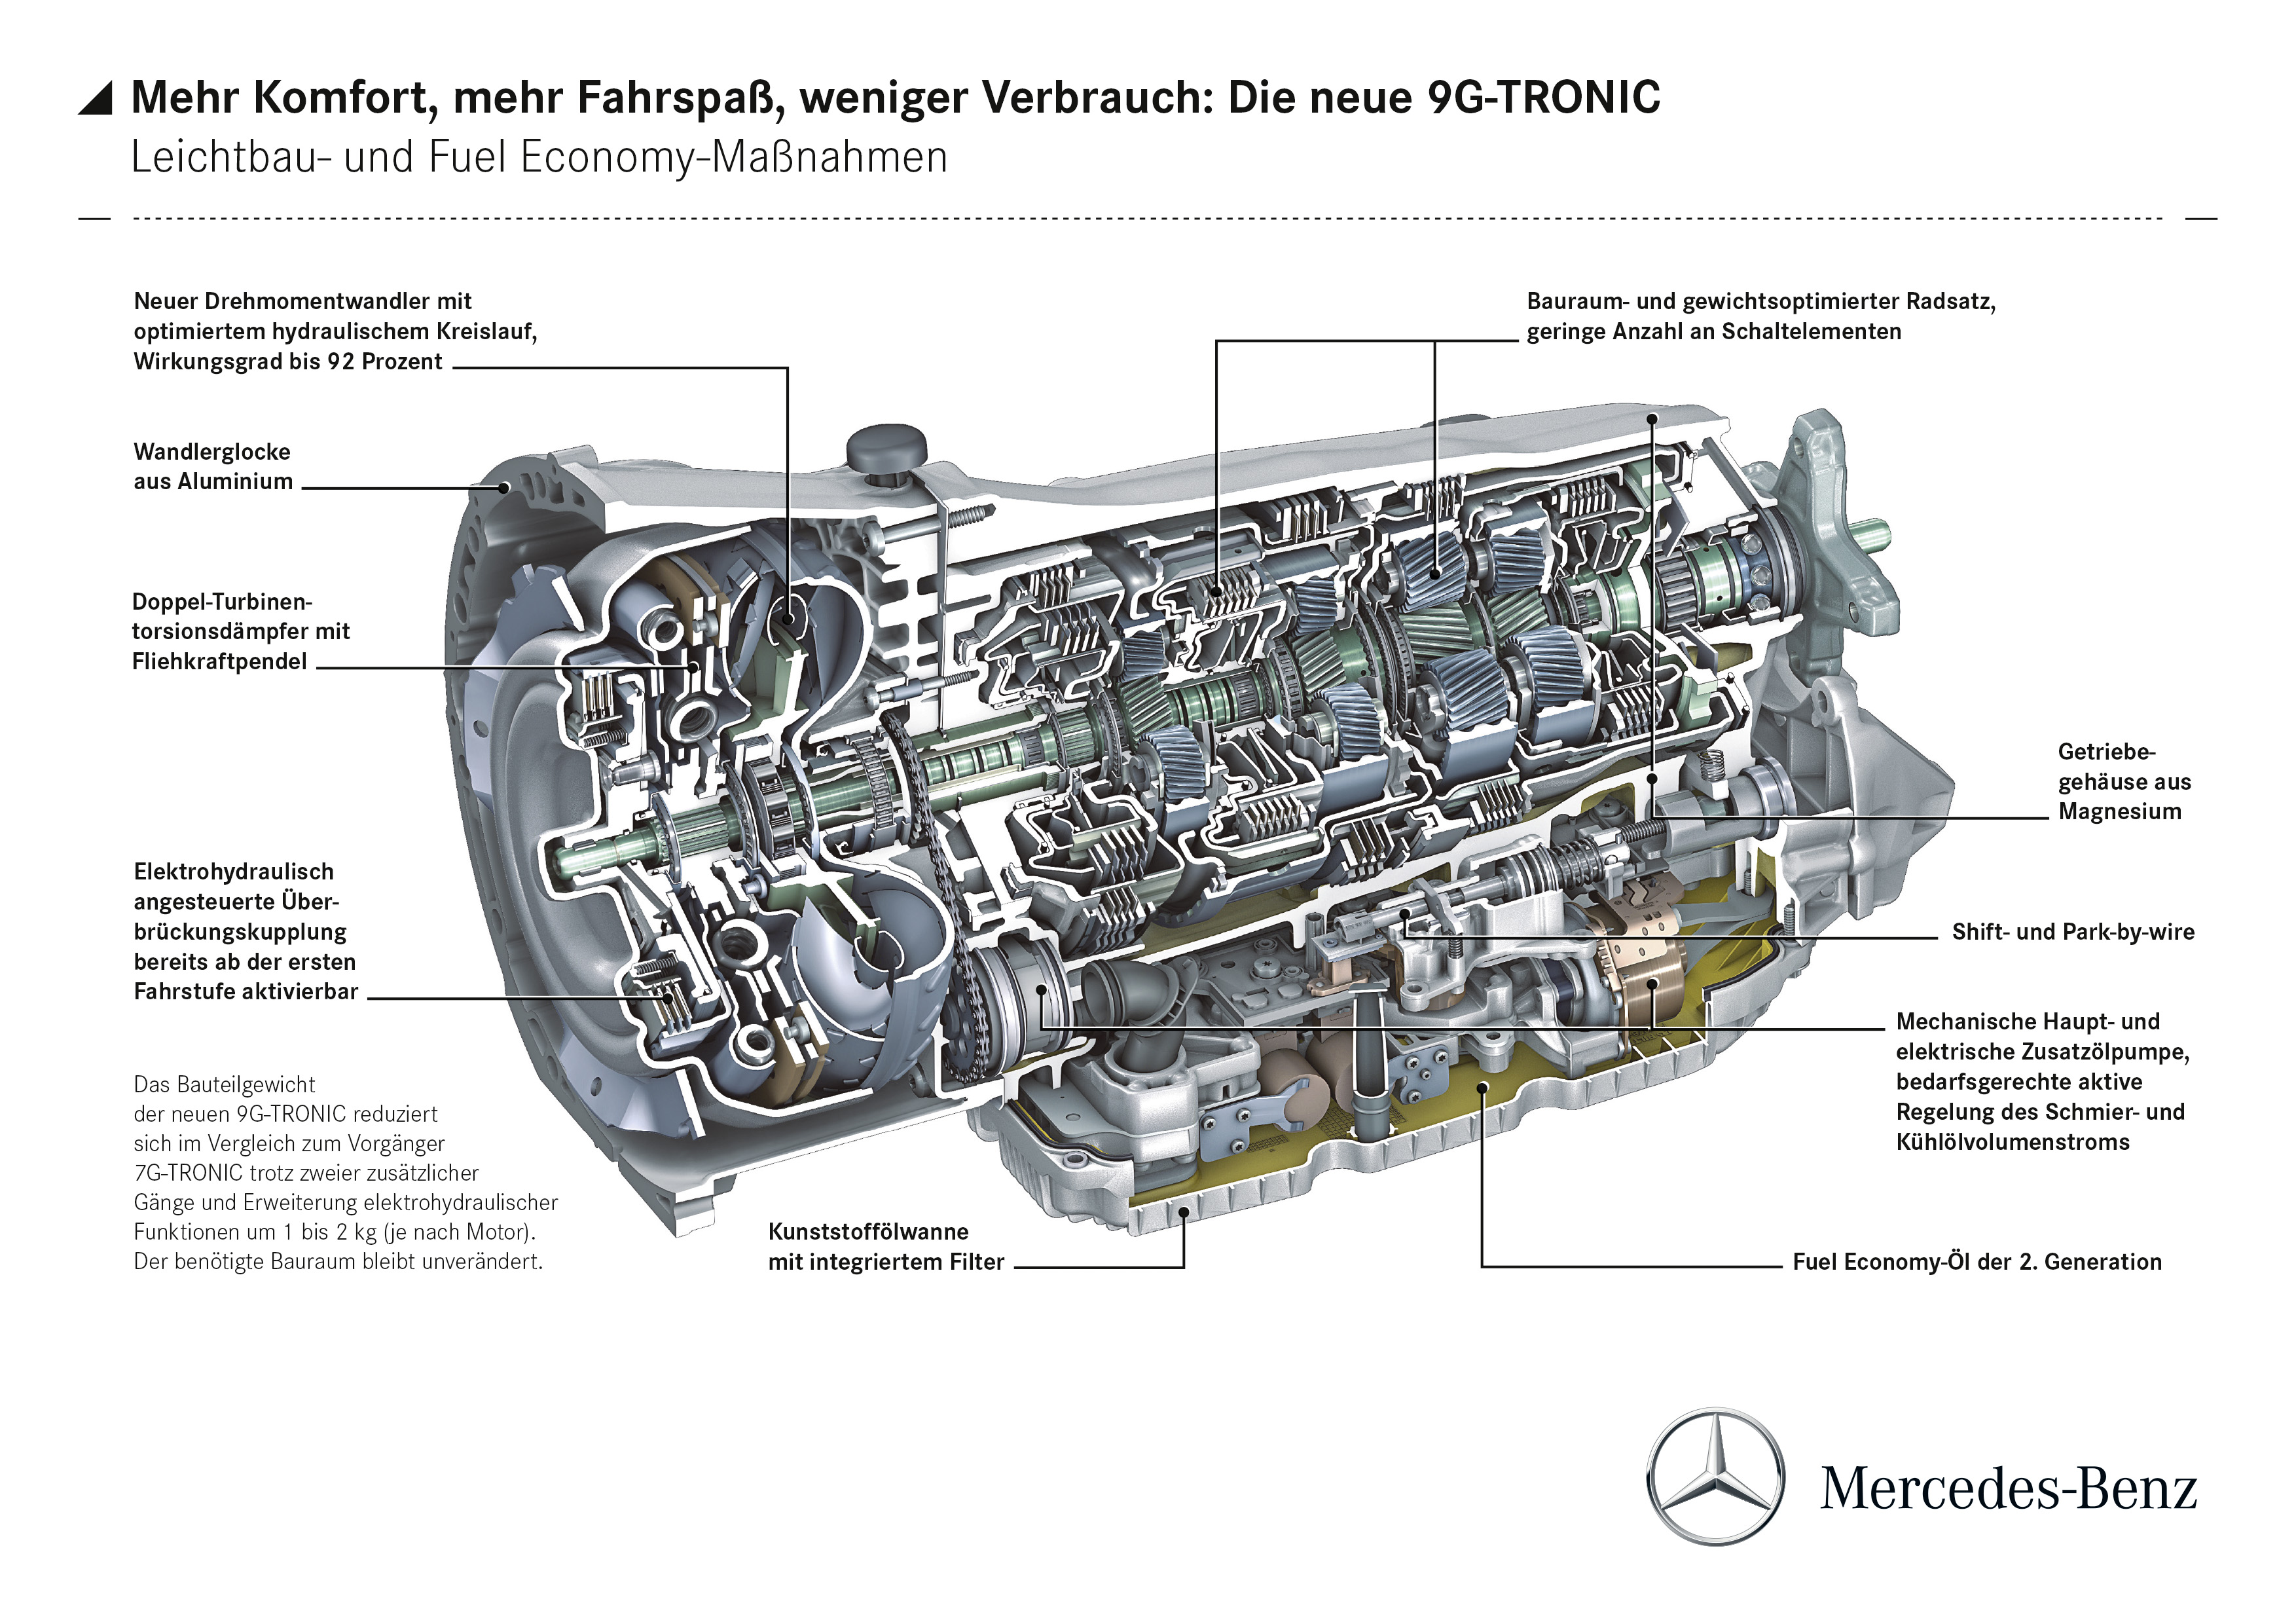 Mercedes Benz To Debut New Nine Speed Automatic Transmission Top Engineering